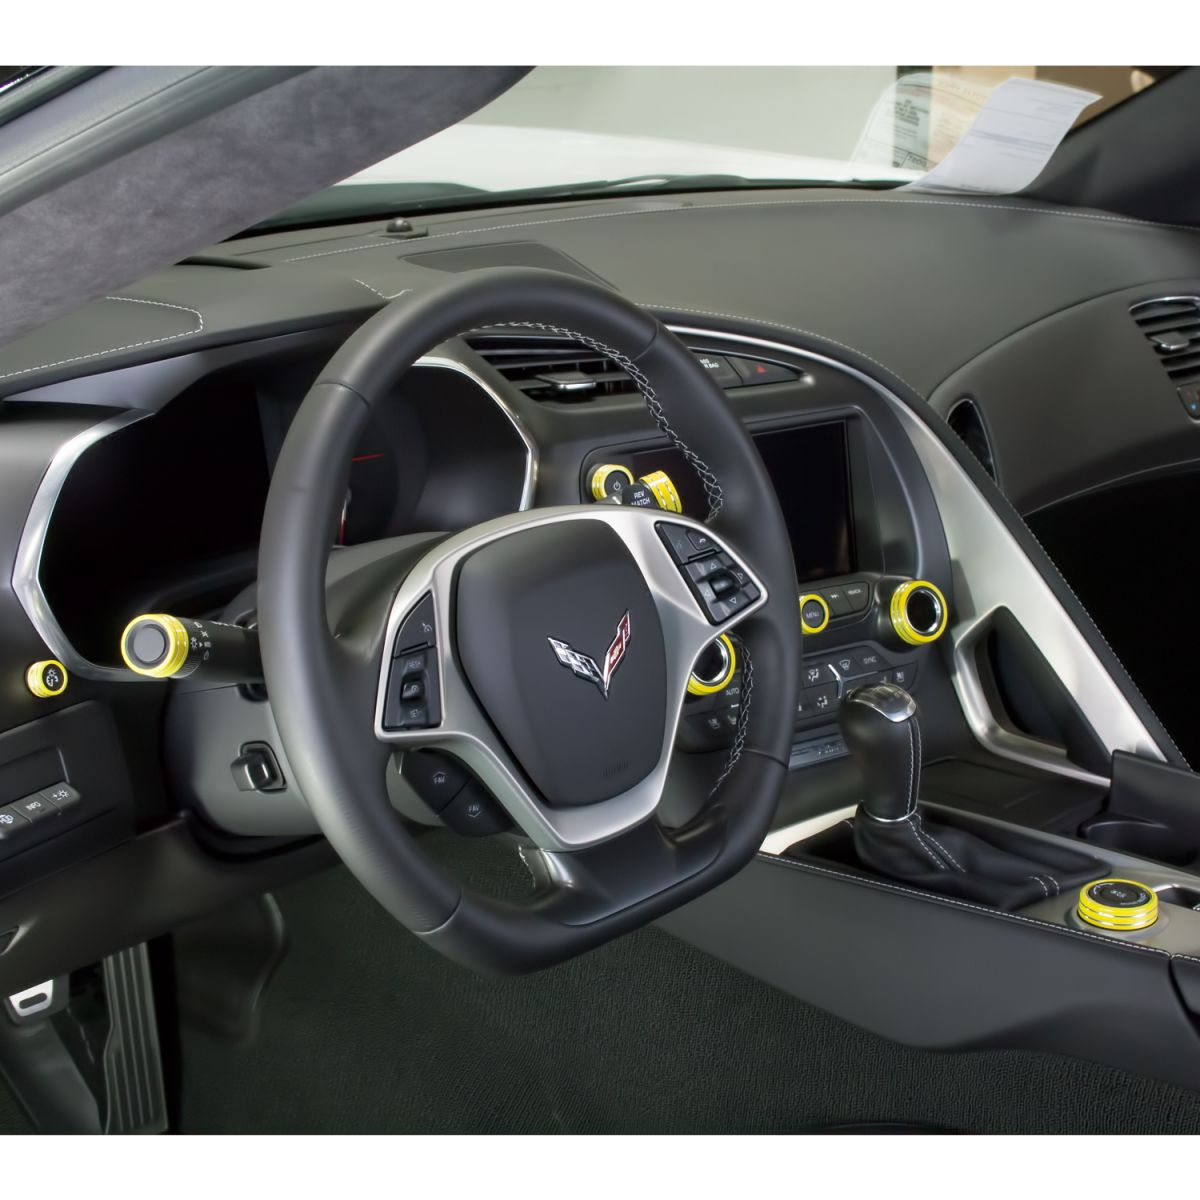 Top 5 Corvette Interior Upgrades Rpi Designs